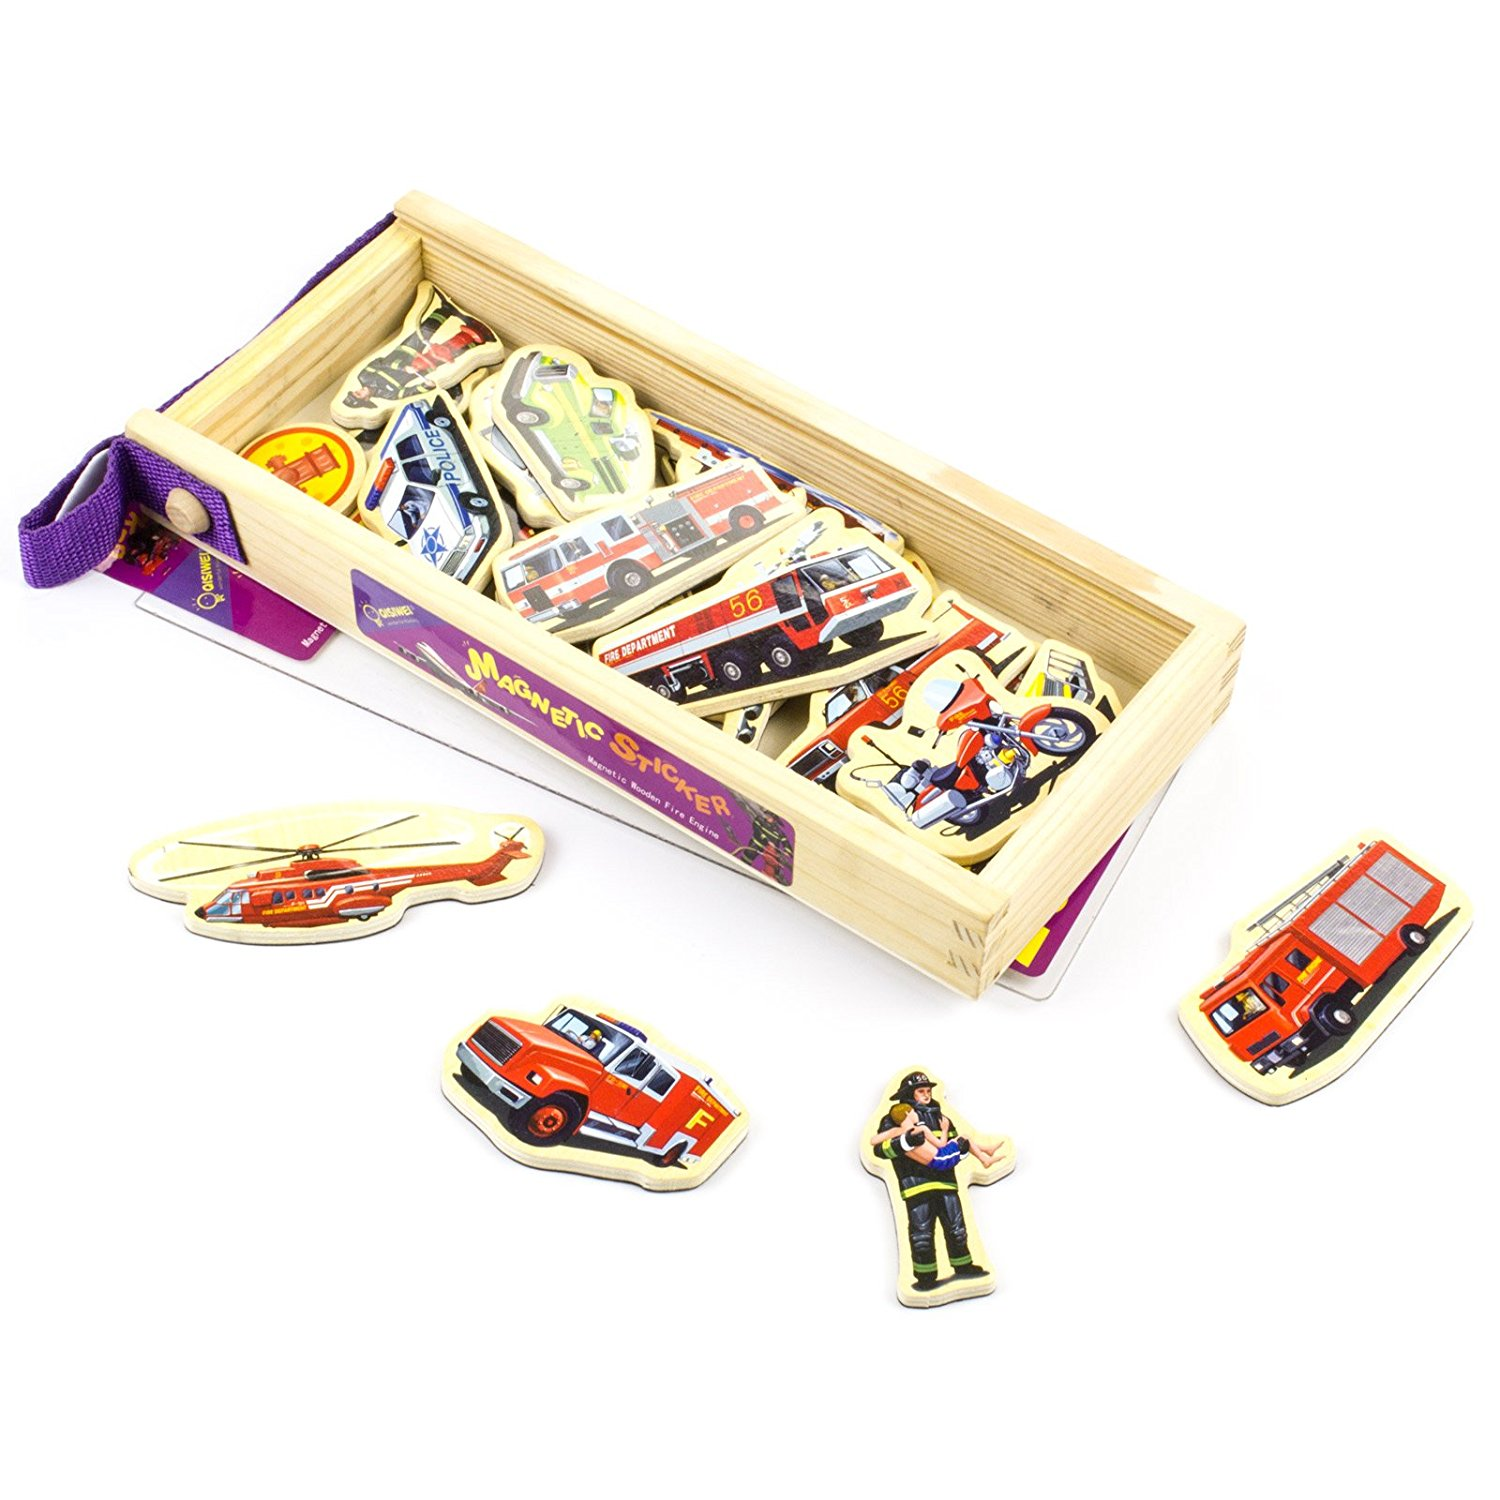 Timy 23 Wooden Magnets Magnetic Fire Engine Vehicle Set in a Box